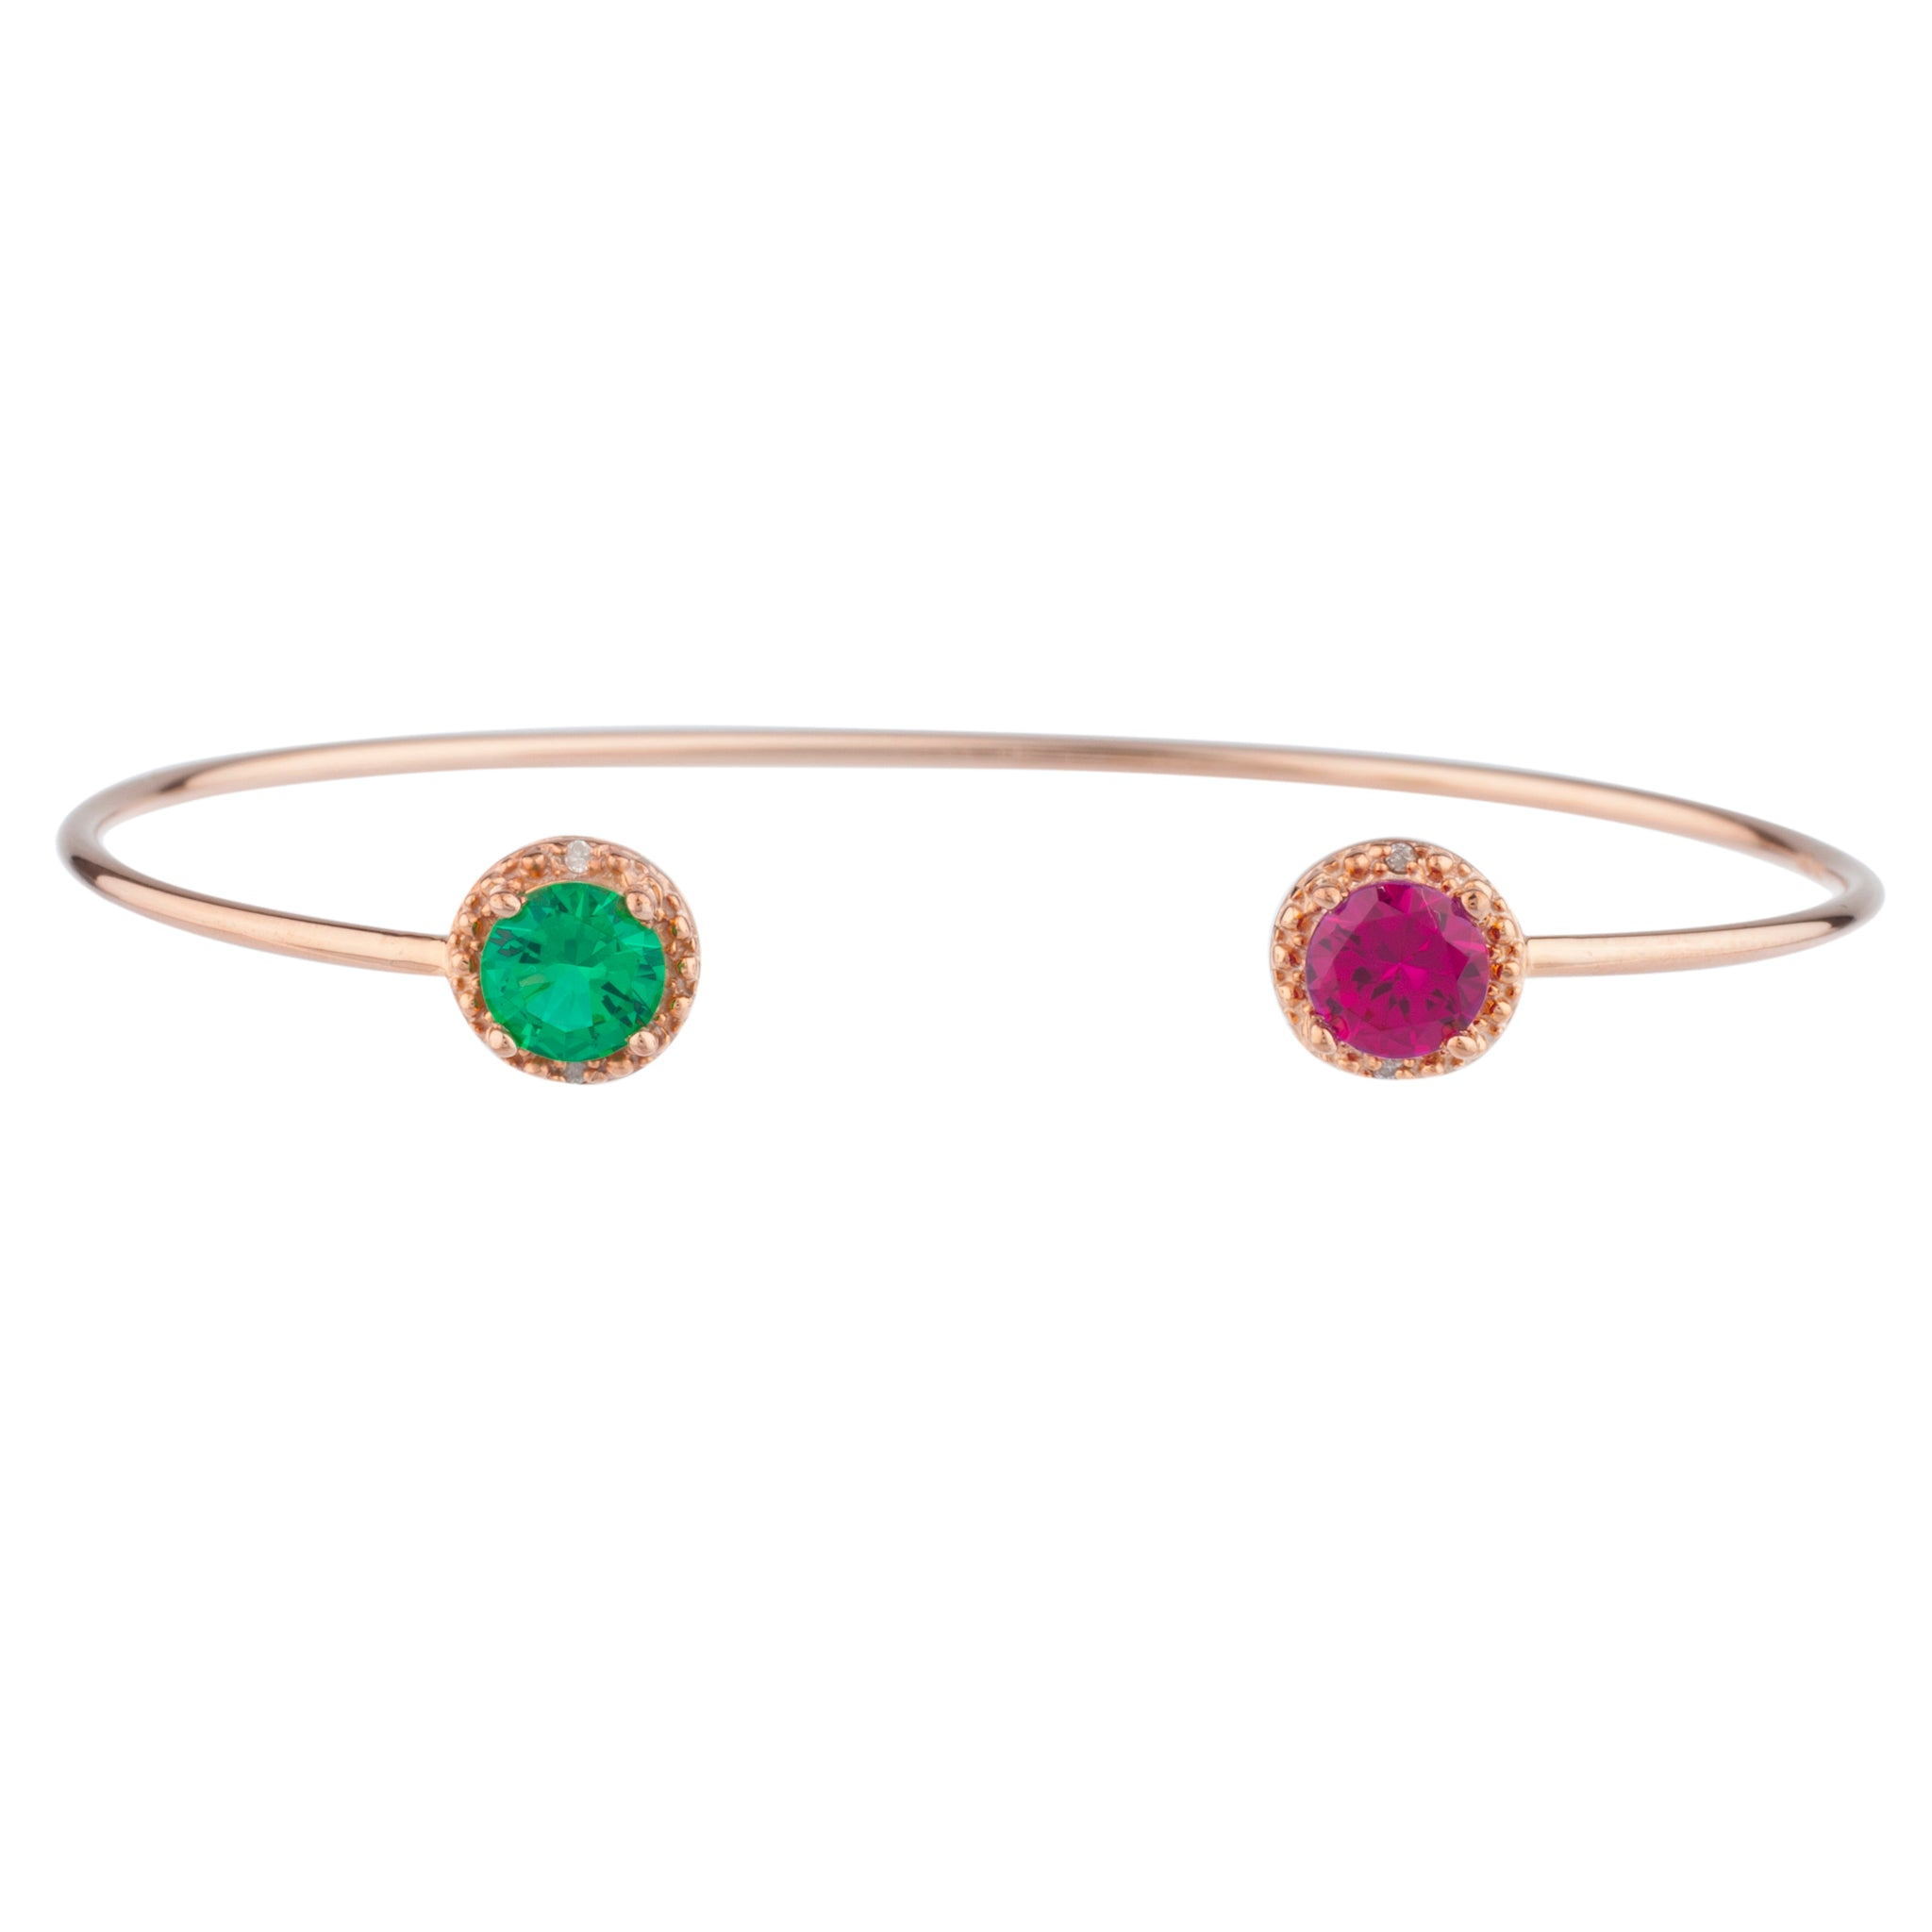 Ruby & Emerald Diamond Bangle Round Bracelet 14Kt Rose Gold Plated Over .925 Sterling Silver